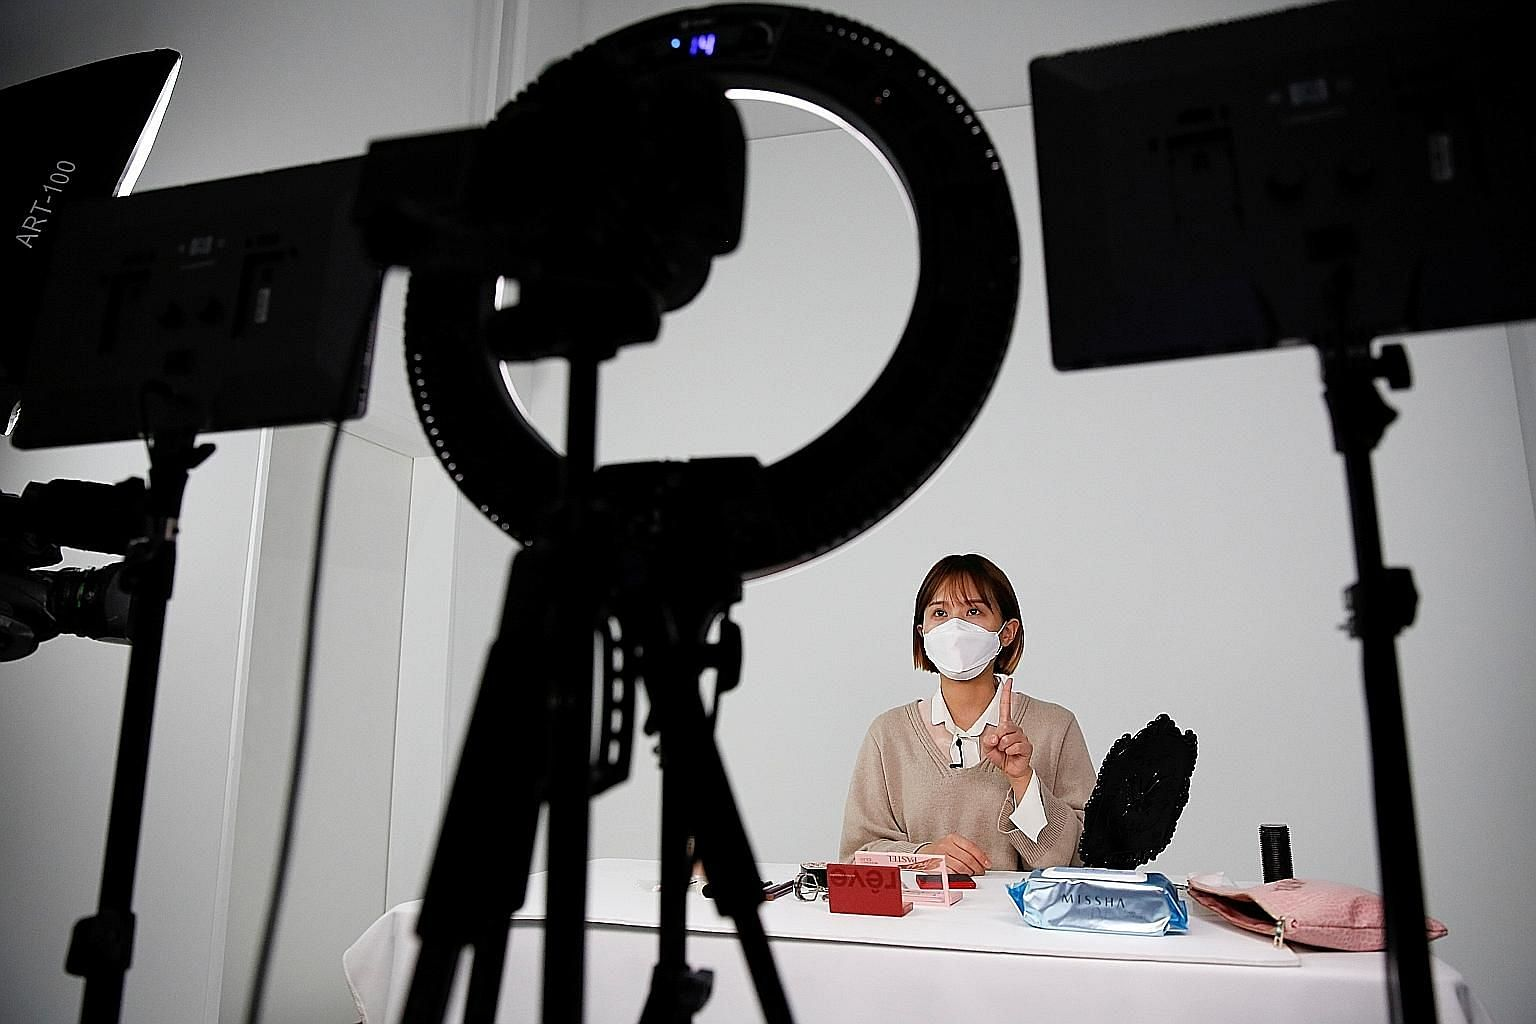 South Korean YouTuber Ssunzy (left) recording a video where she gives tips for applying make-up to look good with a mask and fashion designer Park Youn-hee (above) suggests wearing bold colours to stamp your individuality under the anonymity of a mas